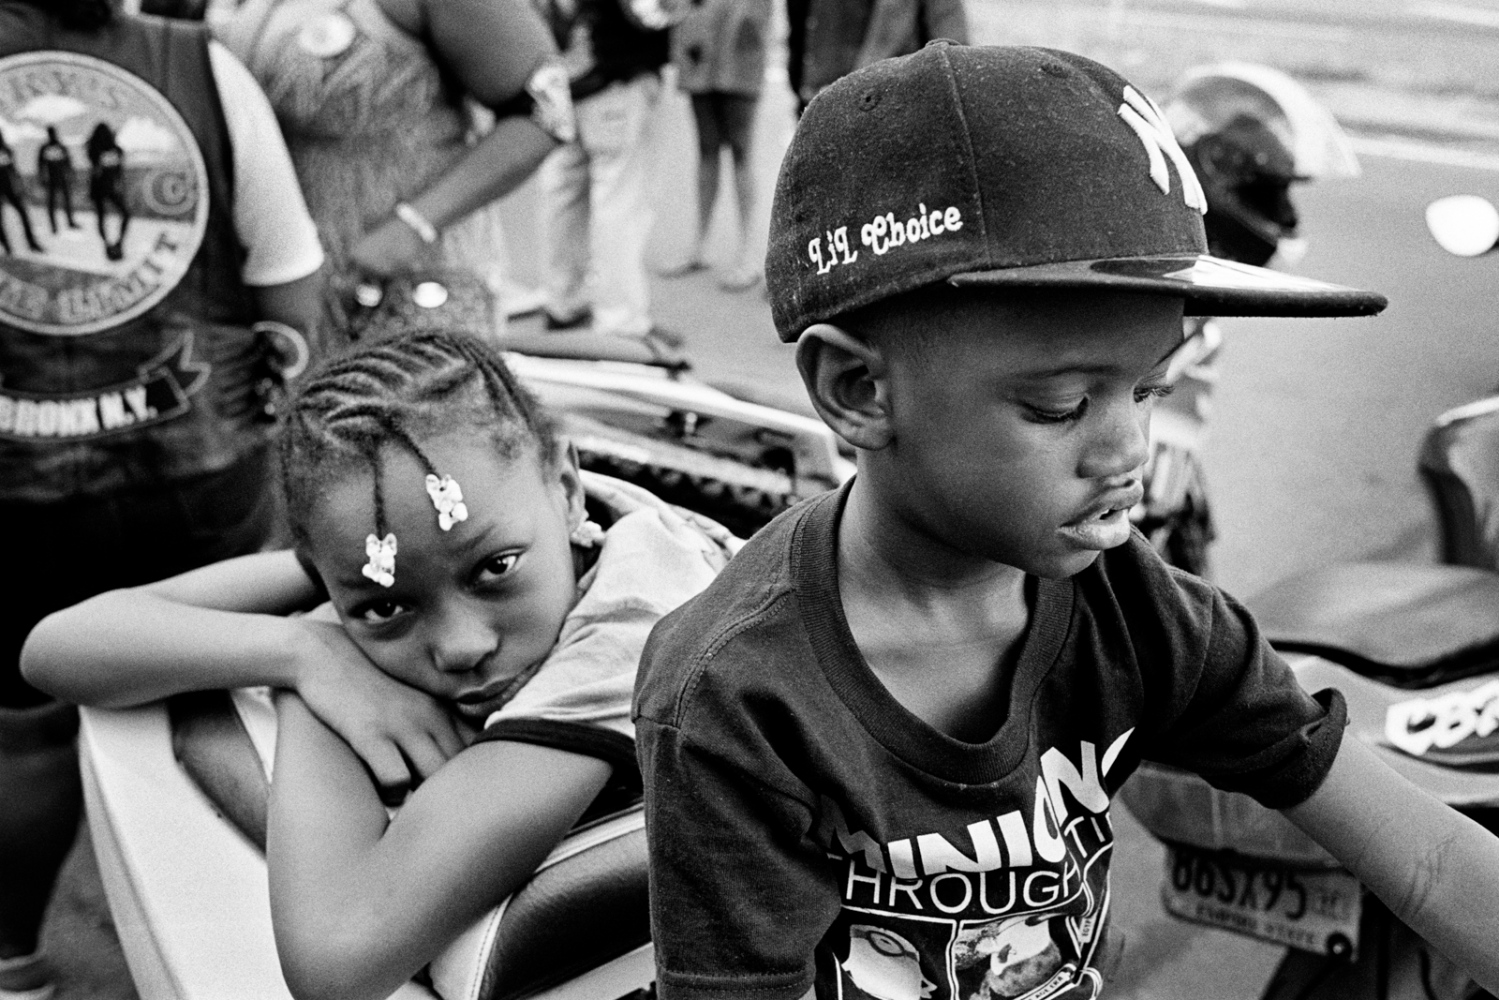 Jailyn andXavier at the Black Falcons MC bike blessing, The Bronx, 2016